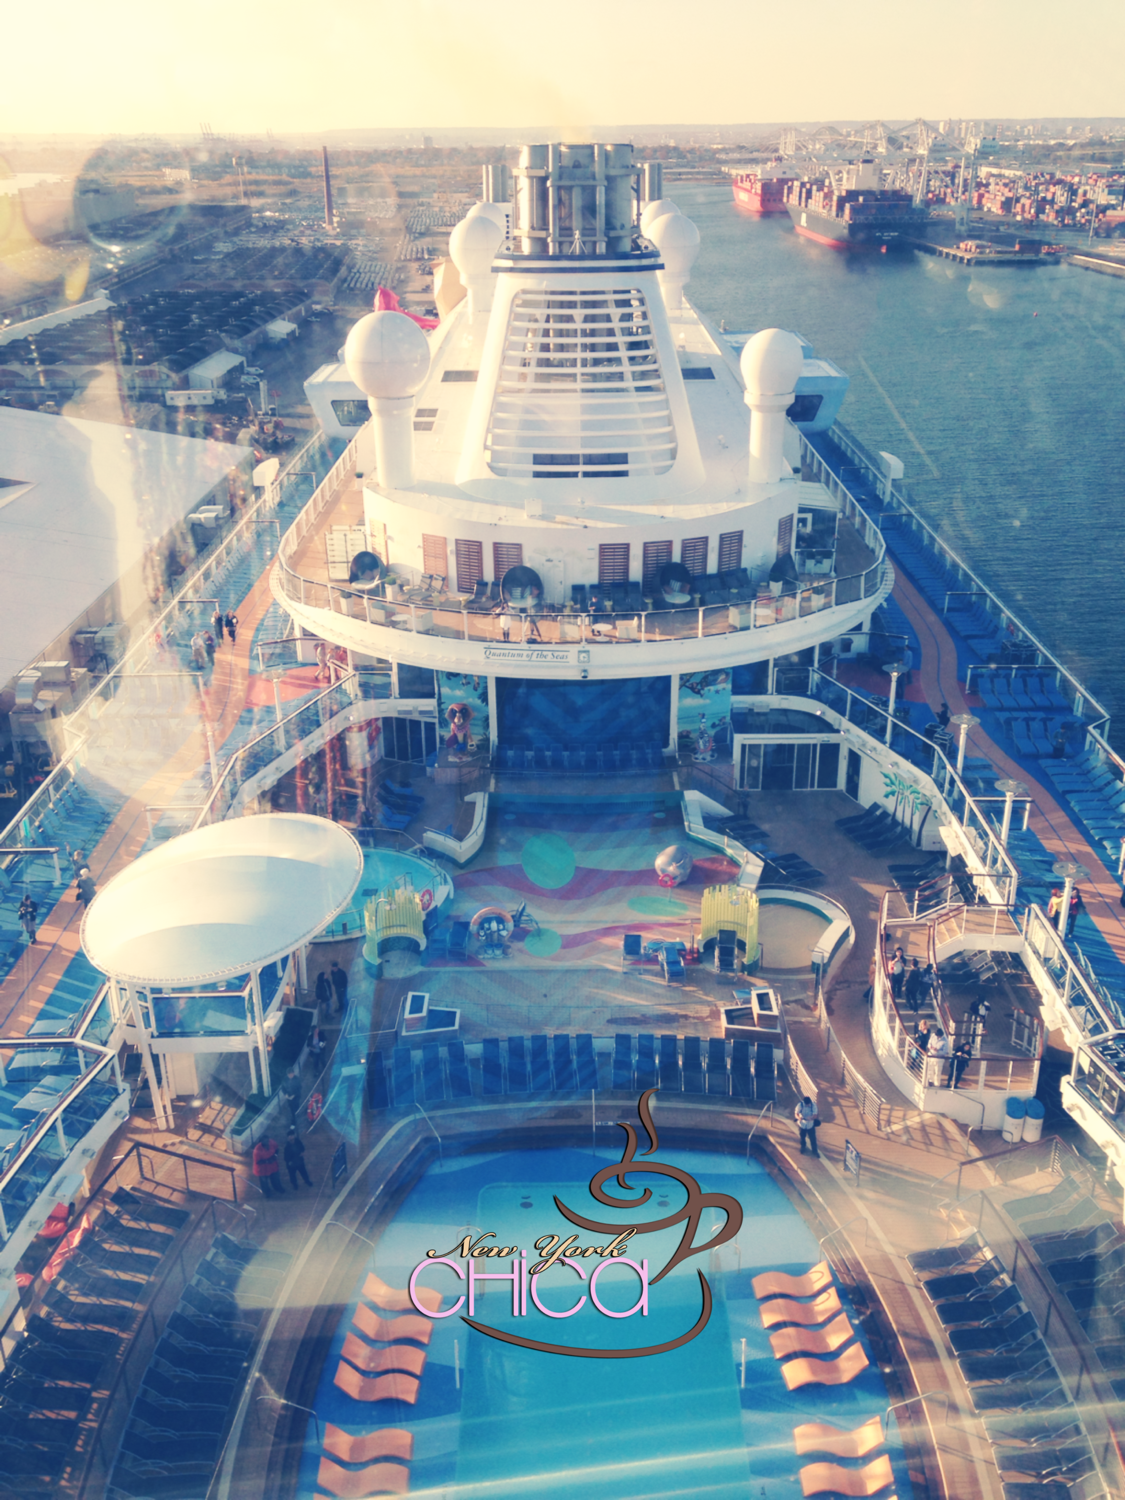 From the North Star - Quantum of the Seas